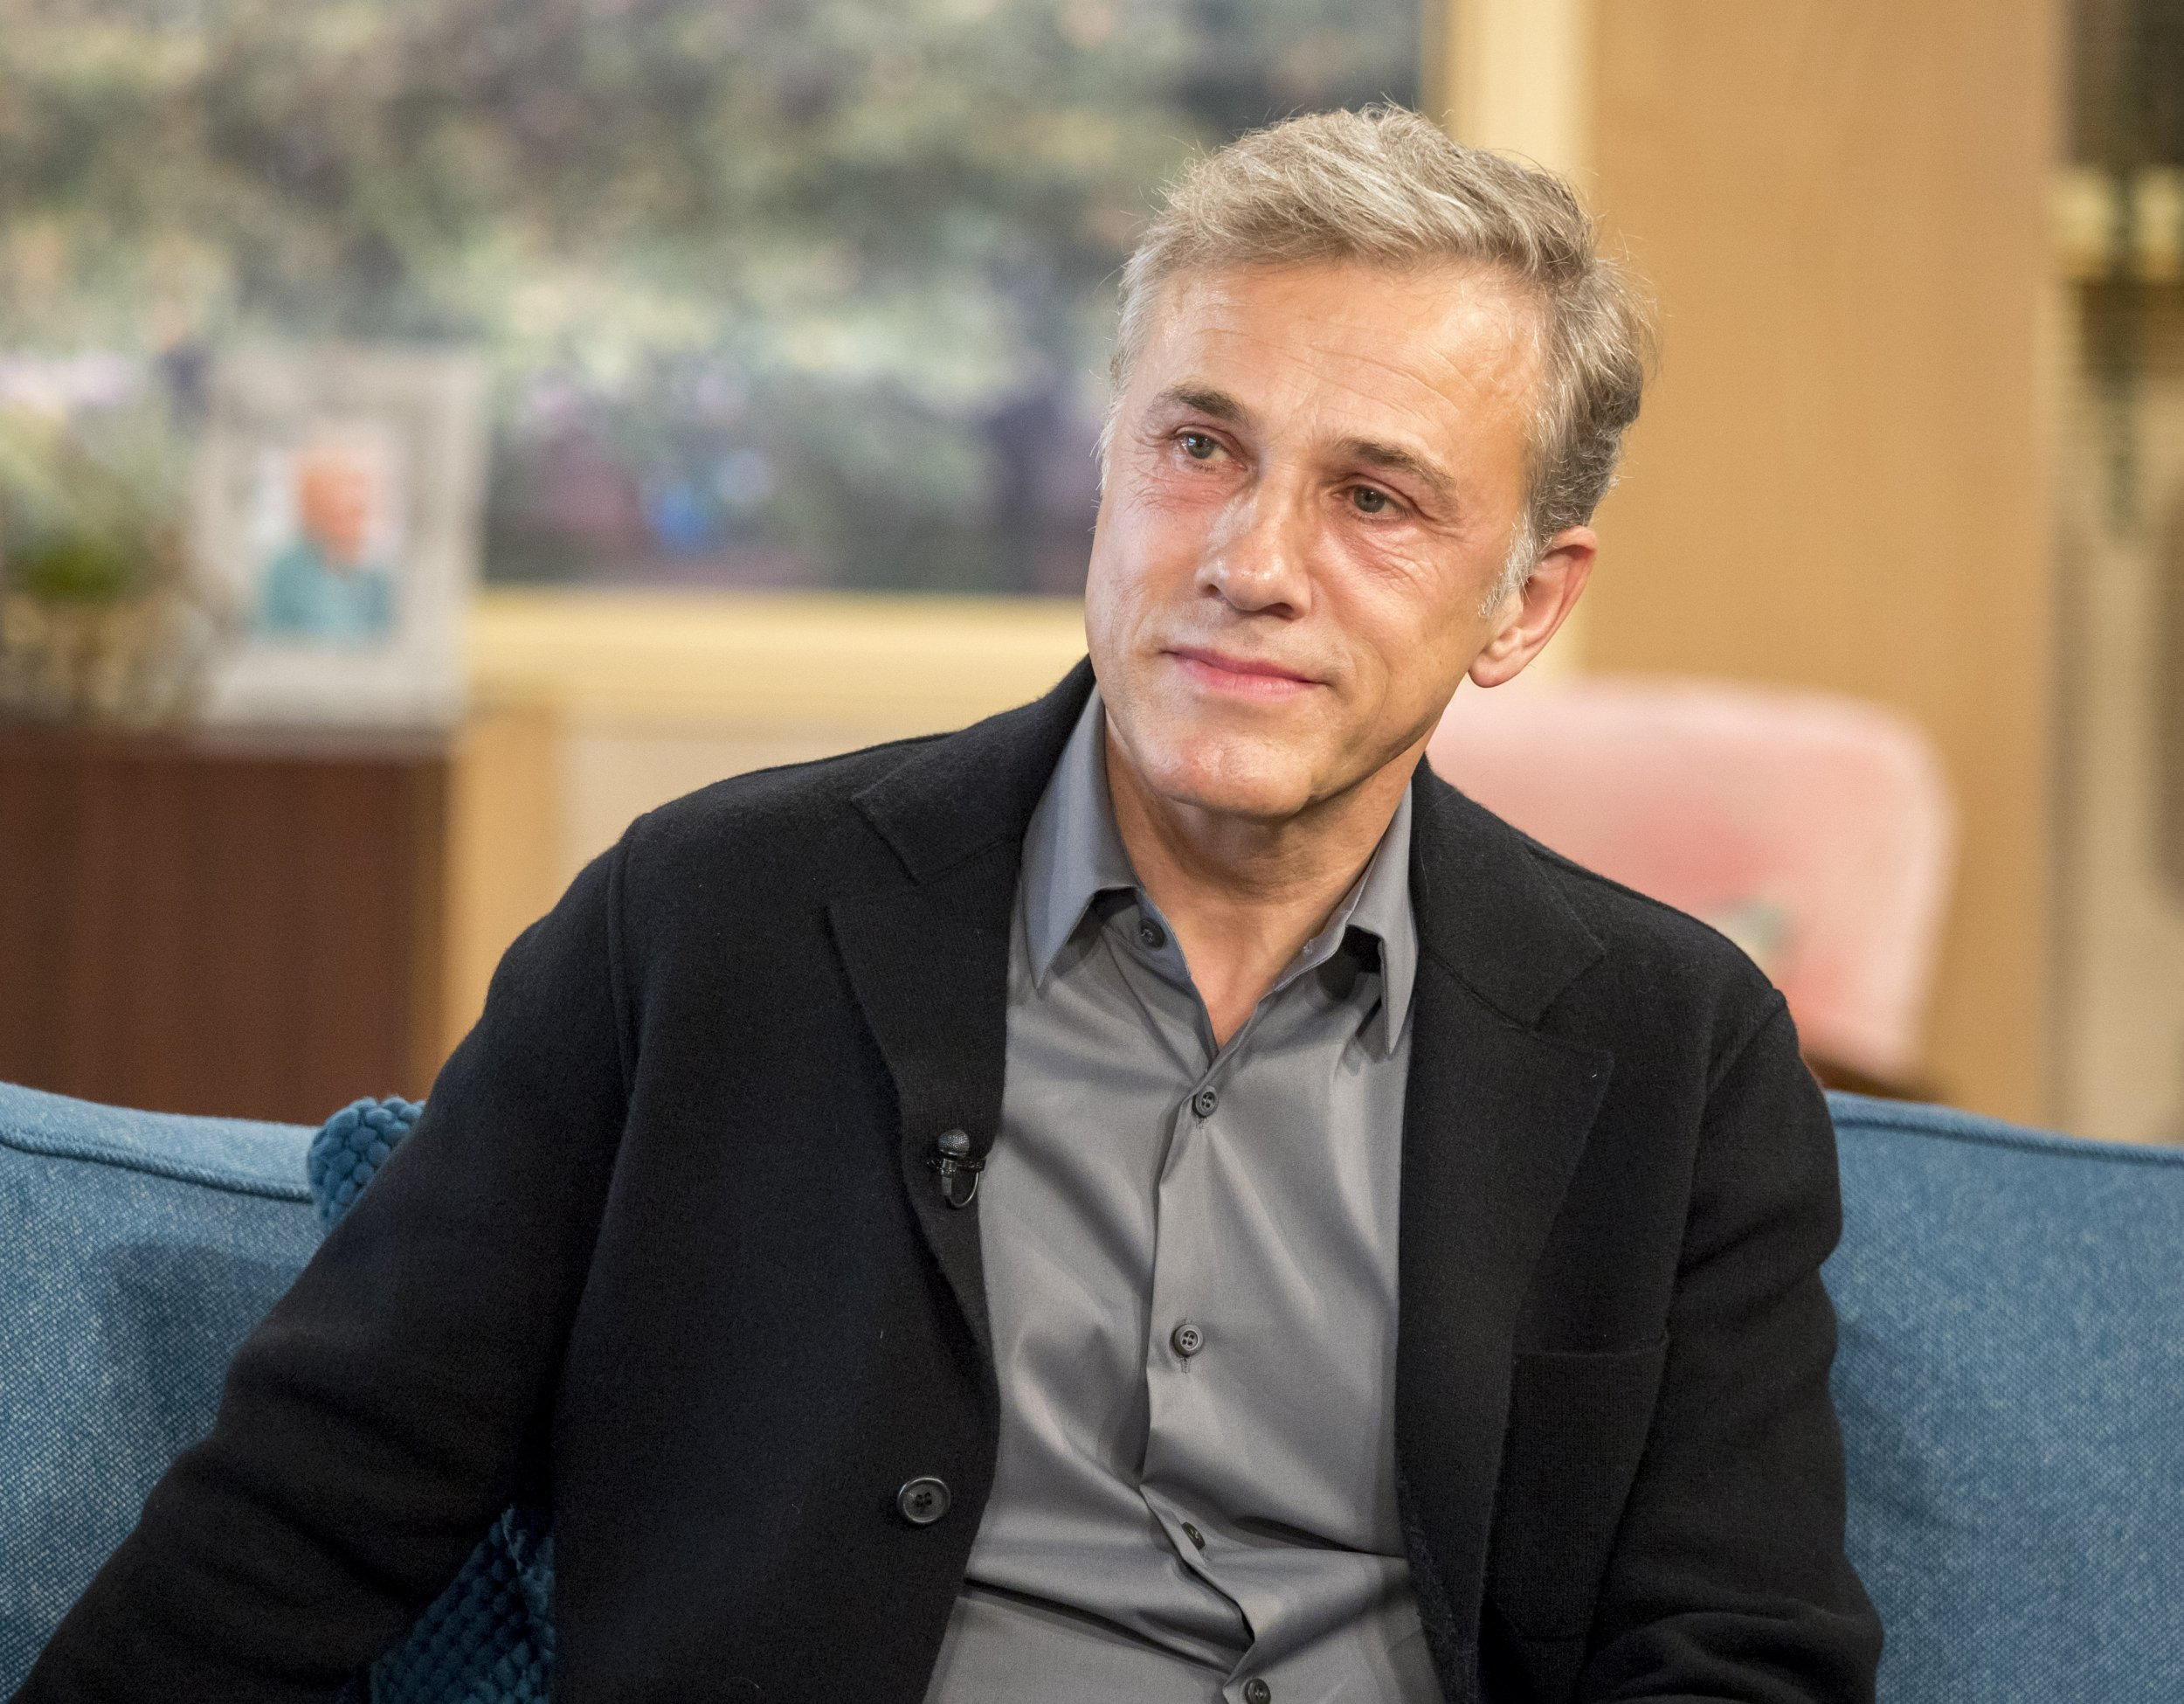 christoph waltz laughingchristoph waltz instagram, christoph waltz young, christoph waltz height, christoph waltz oscar, christoph waltz gif, christoph waltz 2019, christoph waltz interview, christoph waltz django, christoph waltz imdb, christoph waltz deutsch, christoph waltz wife, christoph waltz alita, christoph waltz kommissar rex, christoph waltz laughing, christoph waltz movies, christoph waltz wiki, christoph waltz фильмография, christoph waltz german, christoph waltz contact, christoph waltz net worth